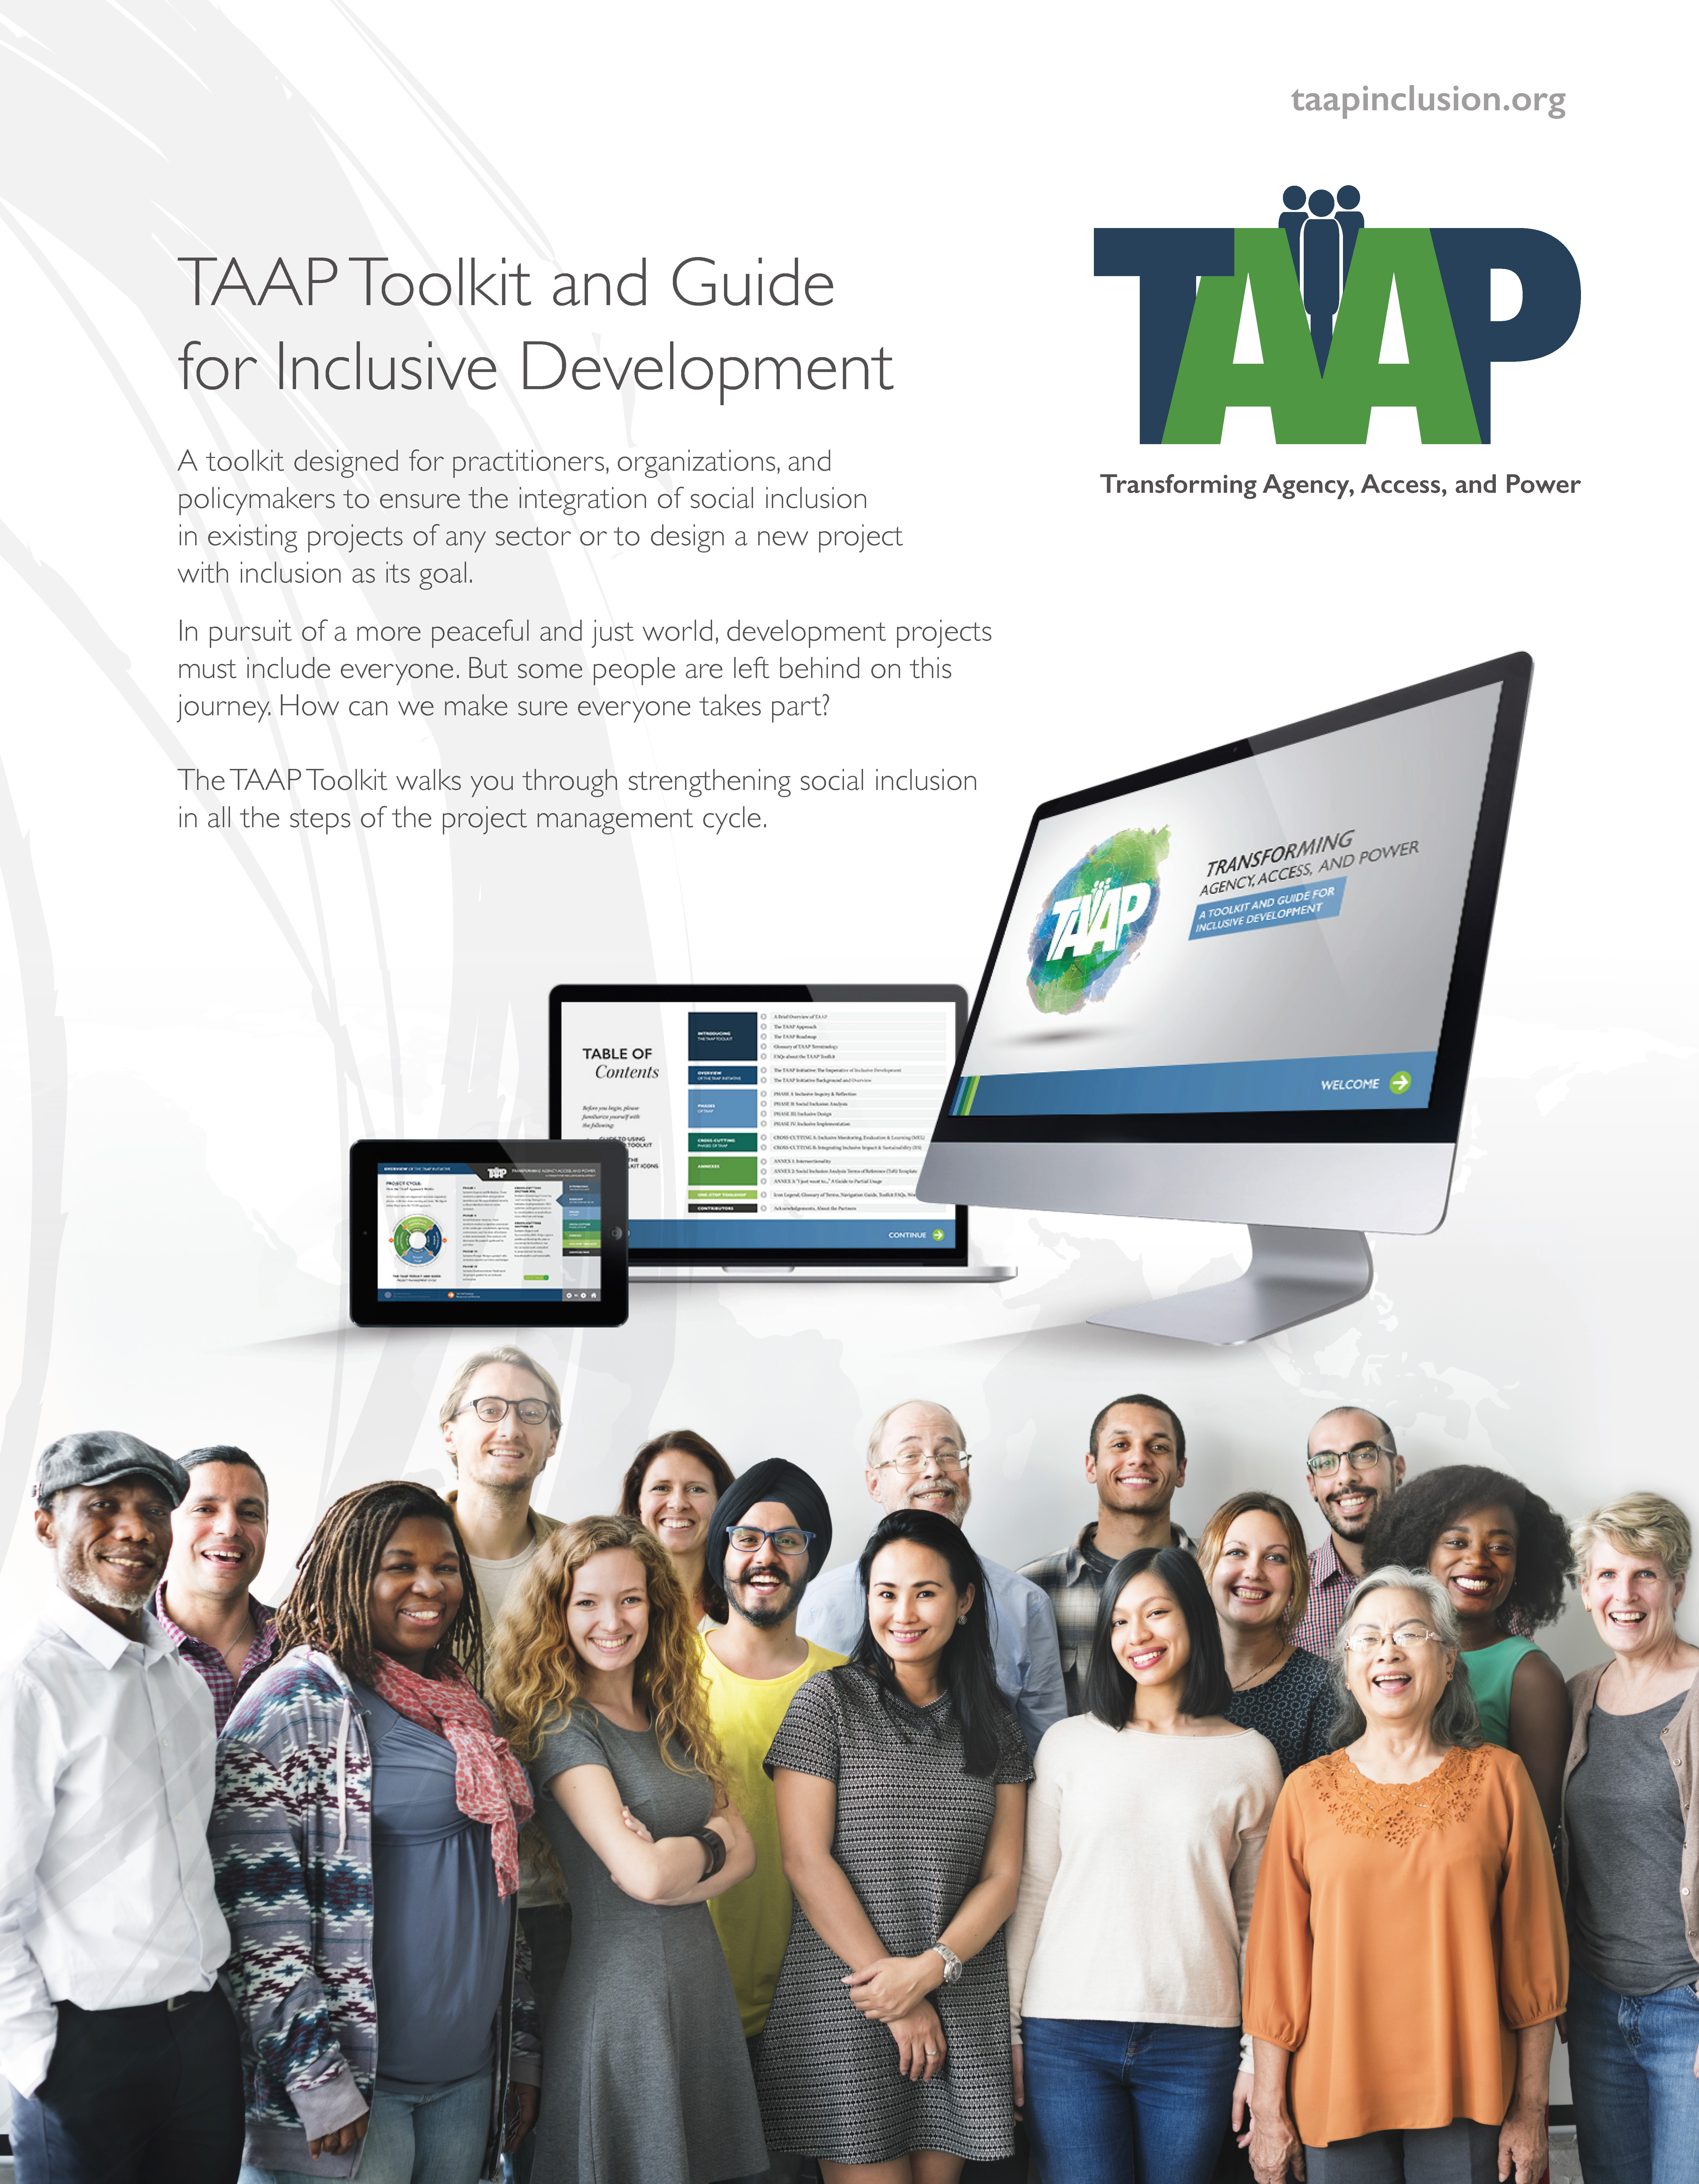 TAAP Toolkit and Guide for Inclusive Development Brochure